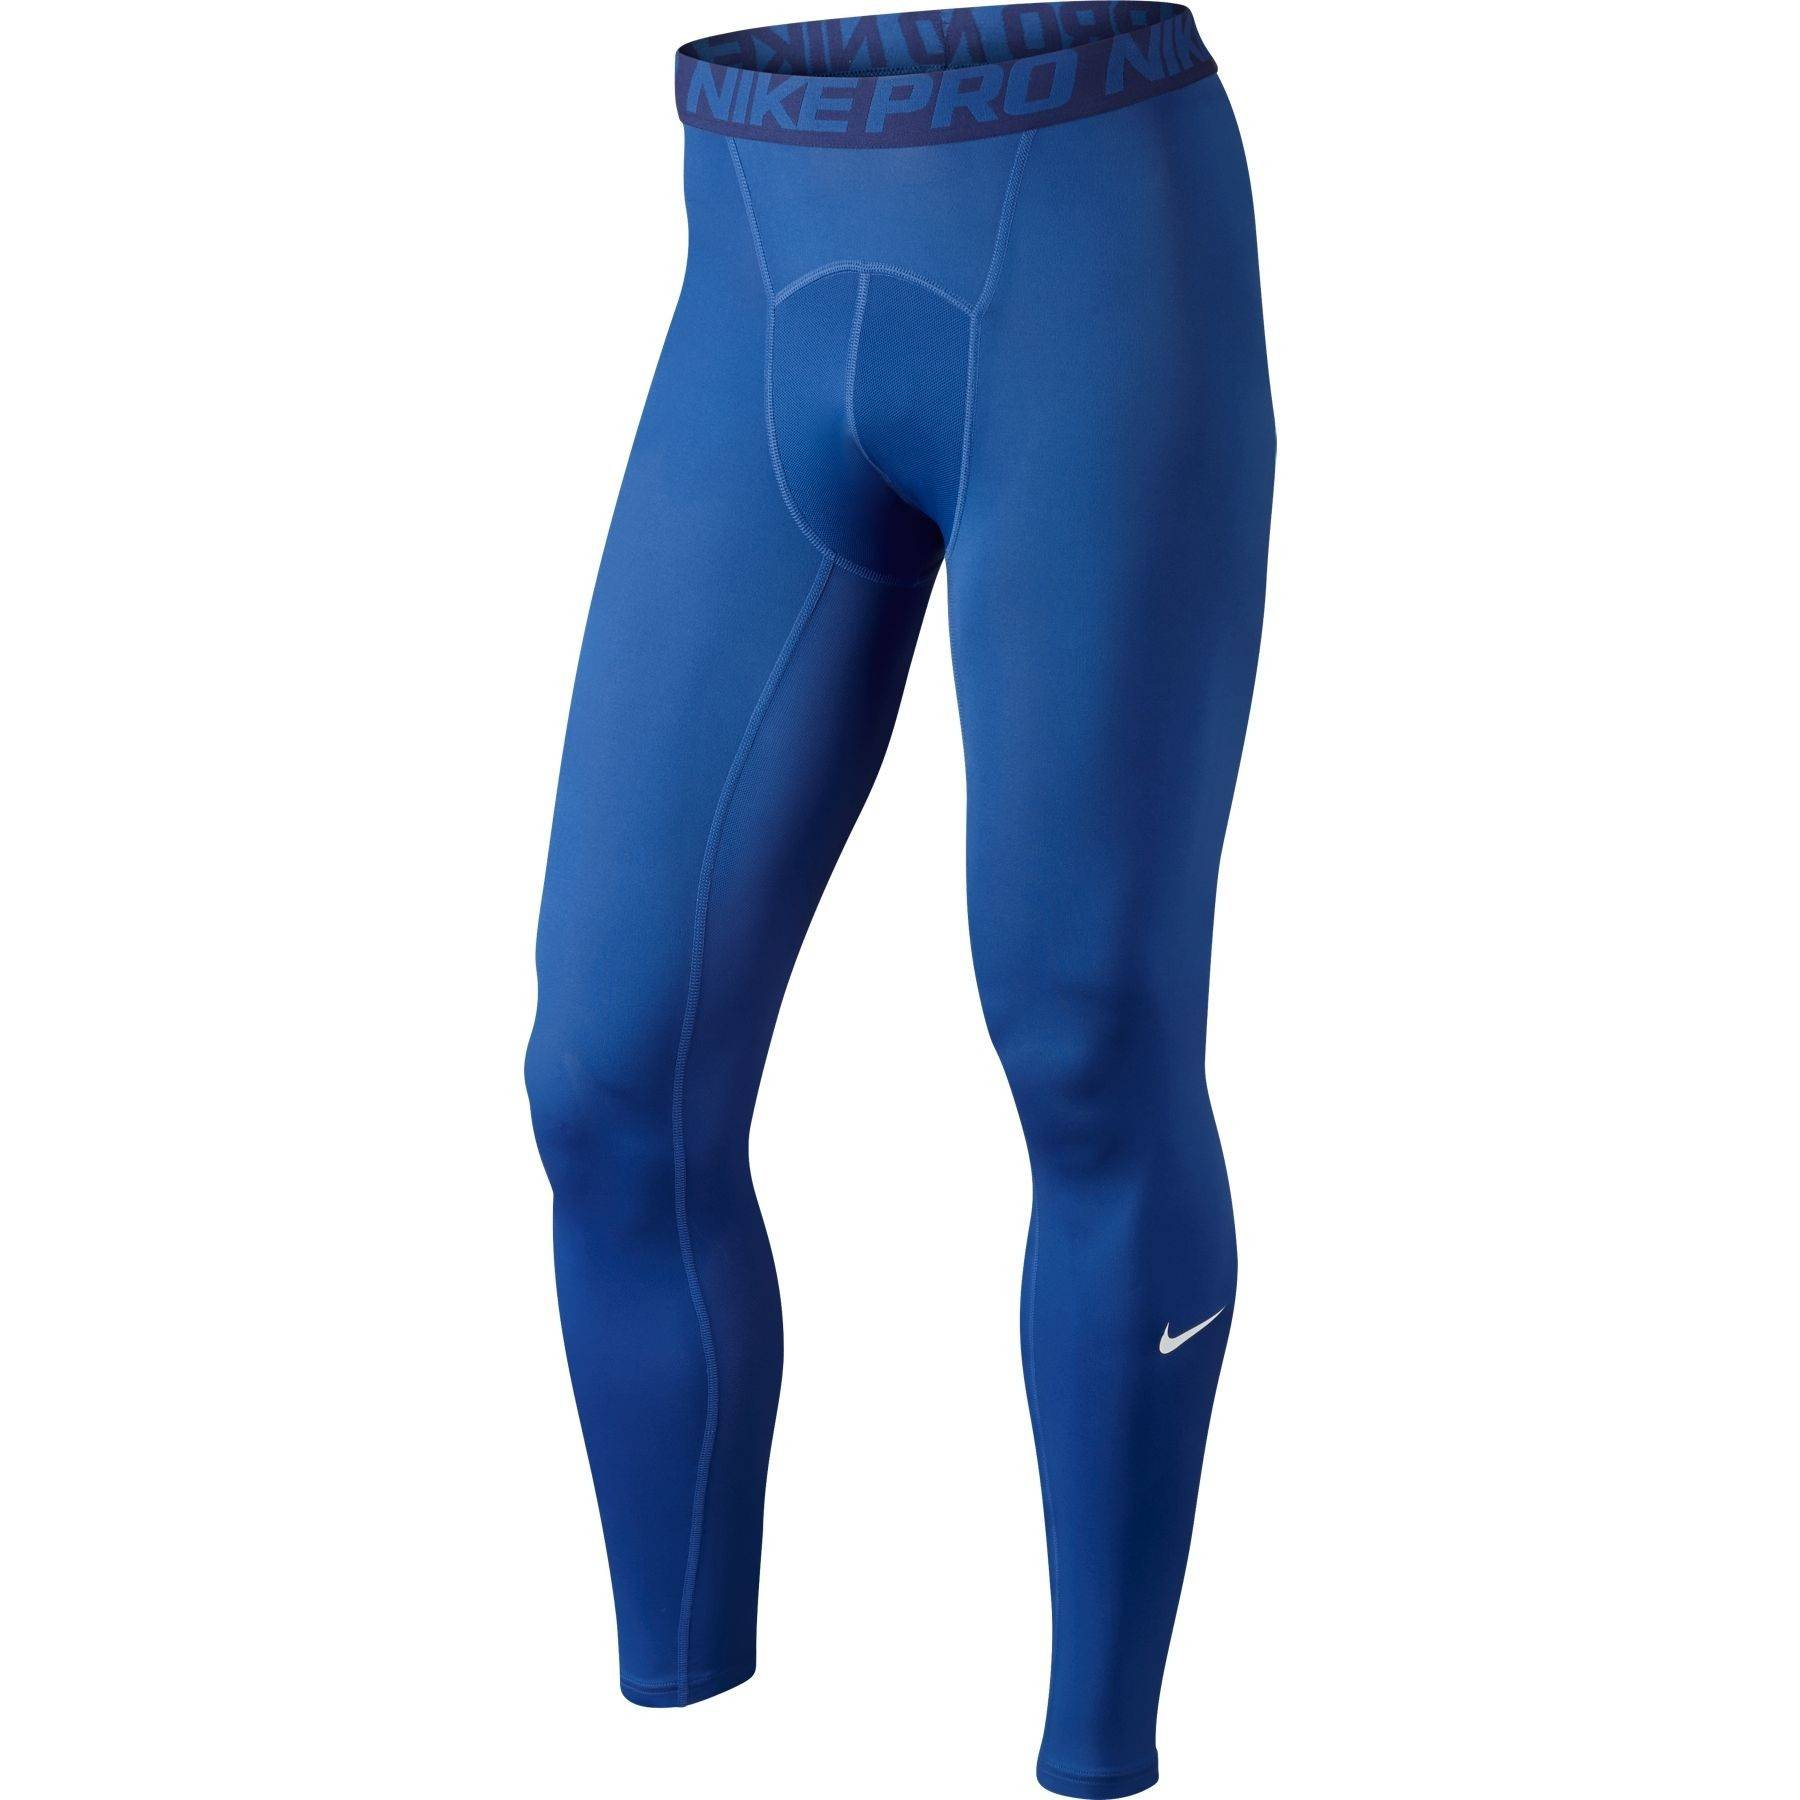 Тайтсы беговые Nike Pro Cool Compression Tight синий - - 703098